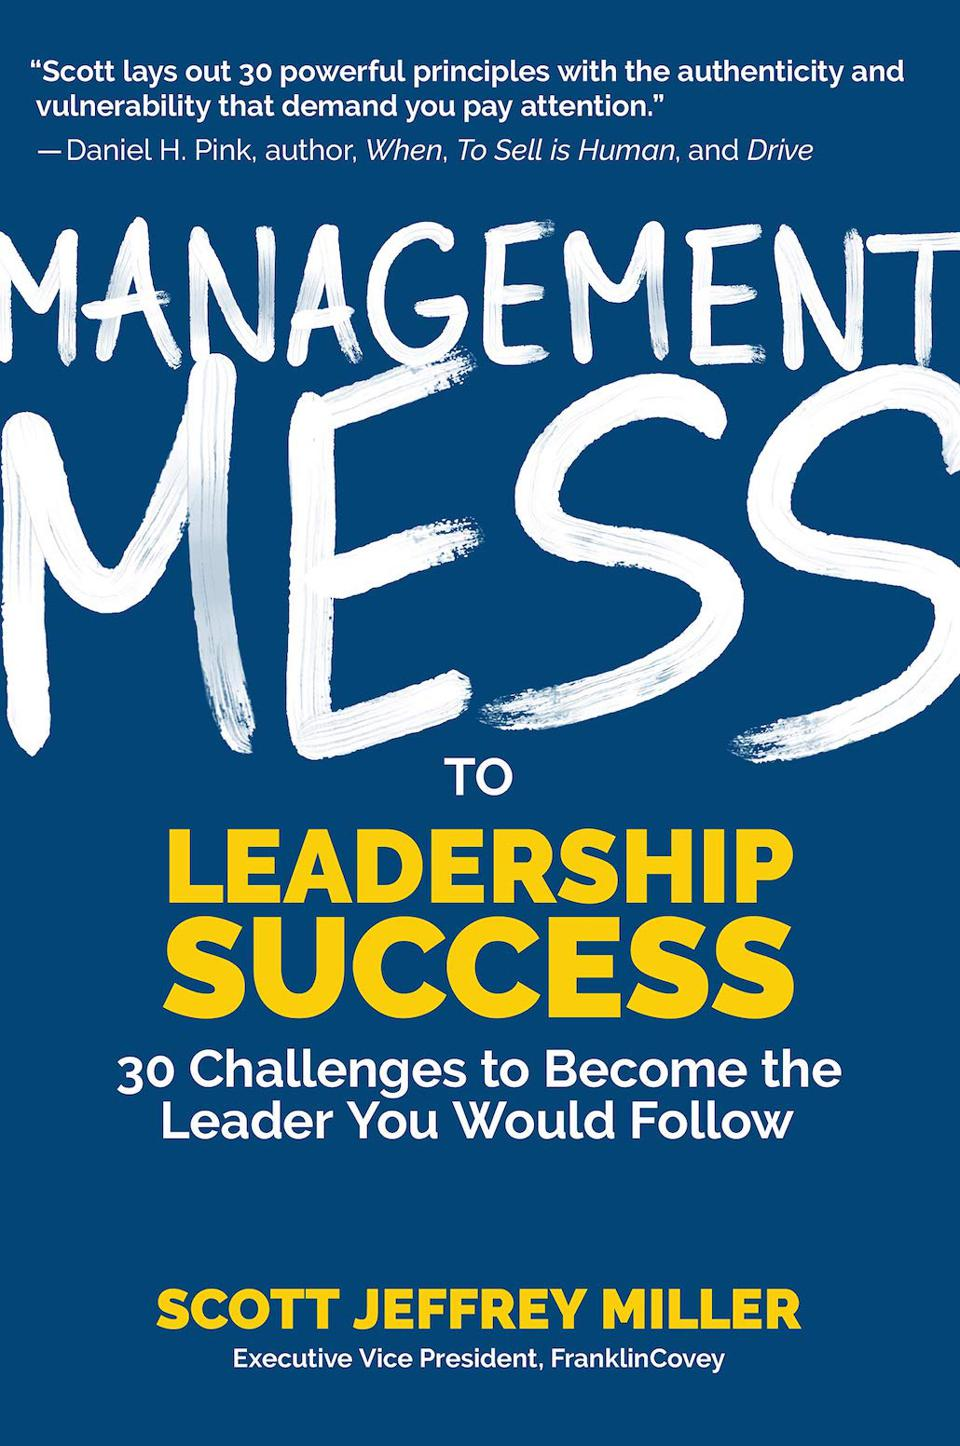 Management Mess to Leadership Success: 30 Challenges to Become the Leader You Would Follow by Scott Jeffrey Miller